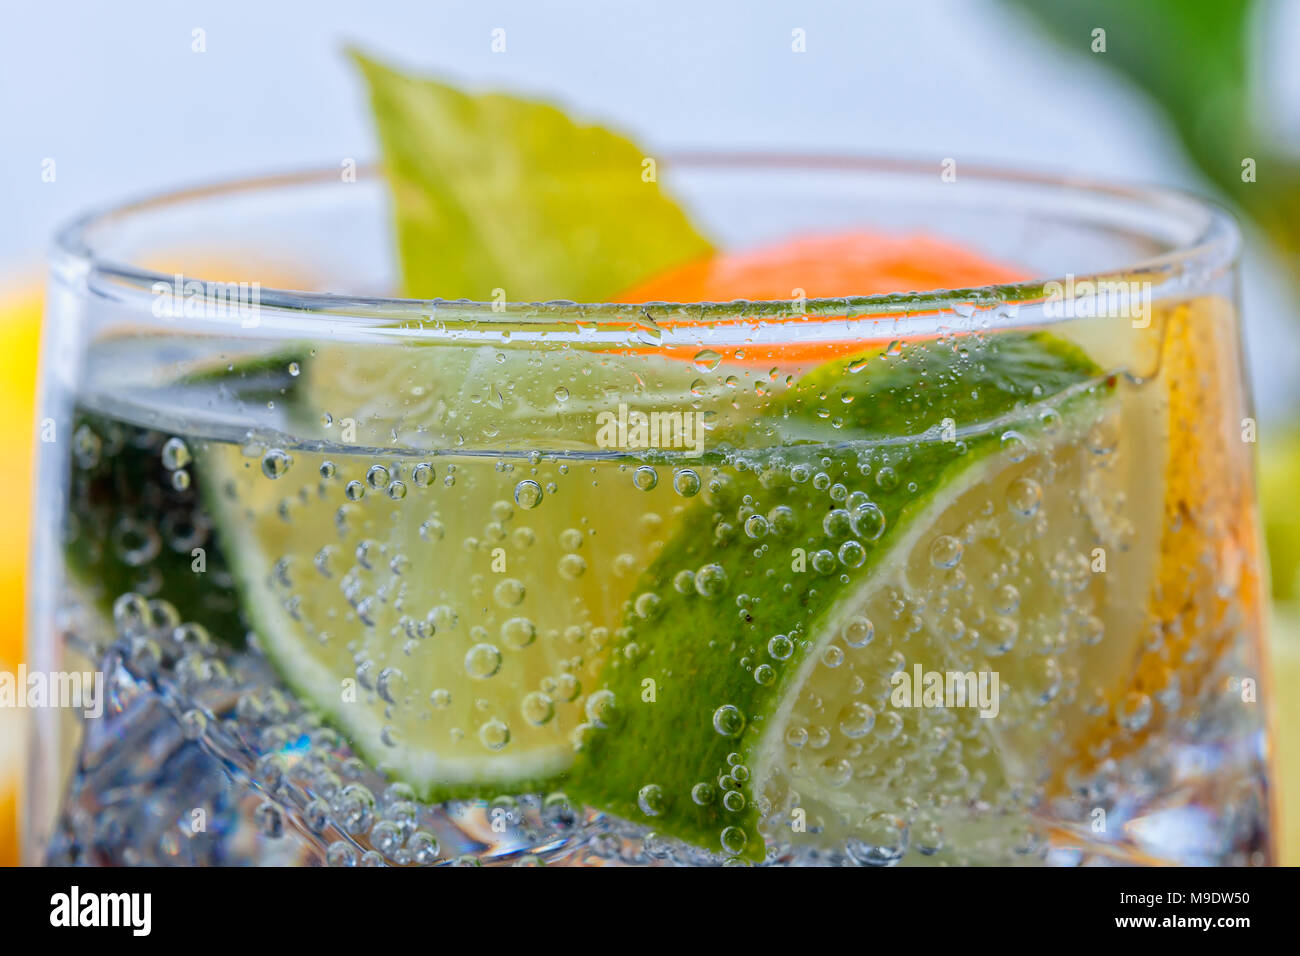 Homemade cocktail with citrus fruits in glass cup with transparent drink ices and bubbles. - Stock Image